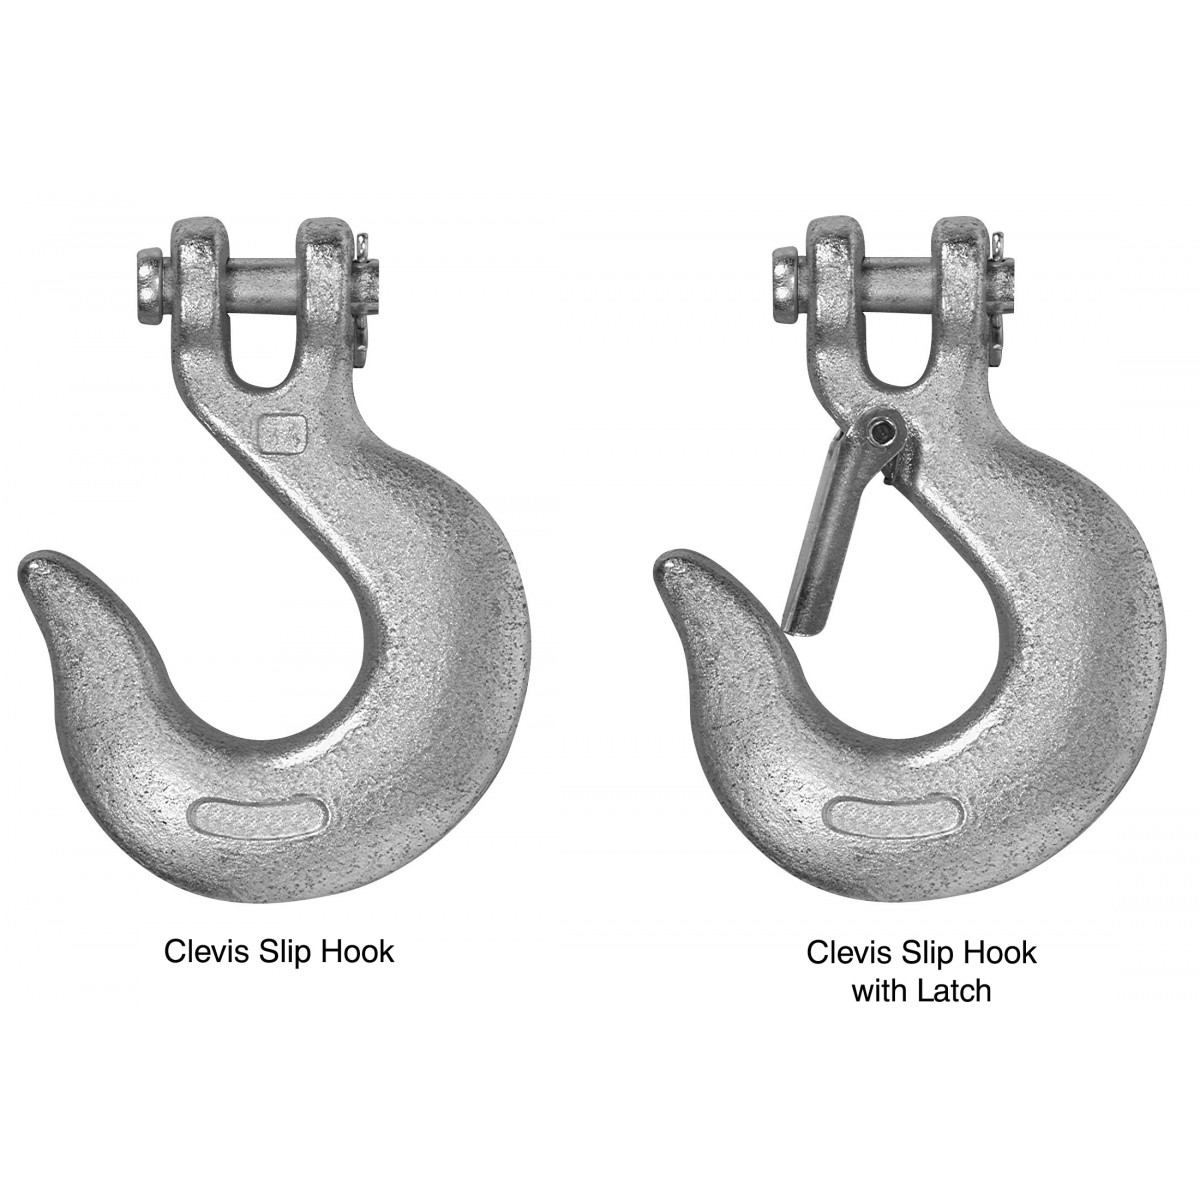 Picture of Campbell T9401824 Clevis Slip Hook, 1/2 in Trade, 9200 lb Working Load, 43 Grade, Steel, Zinc